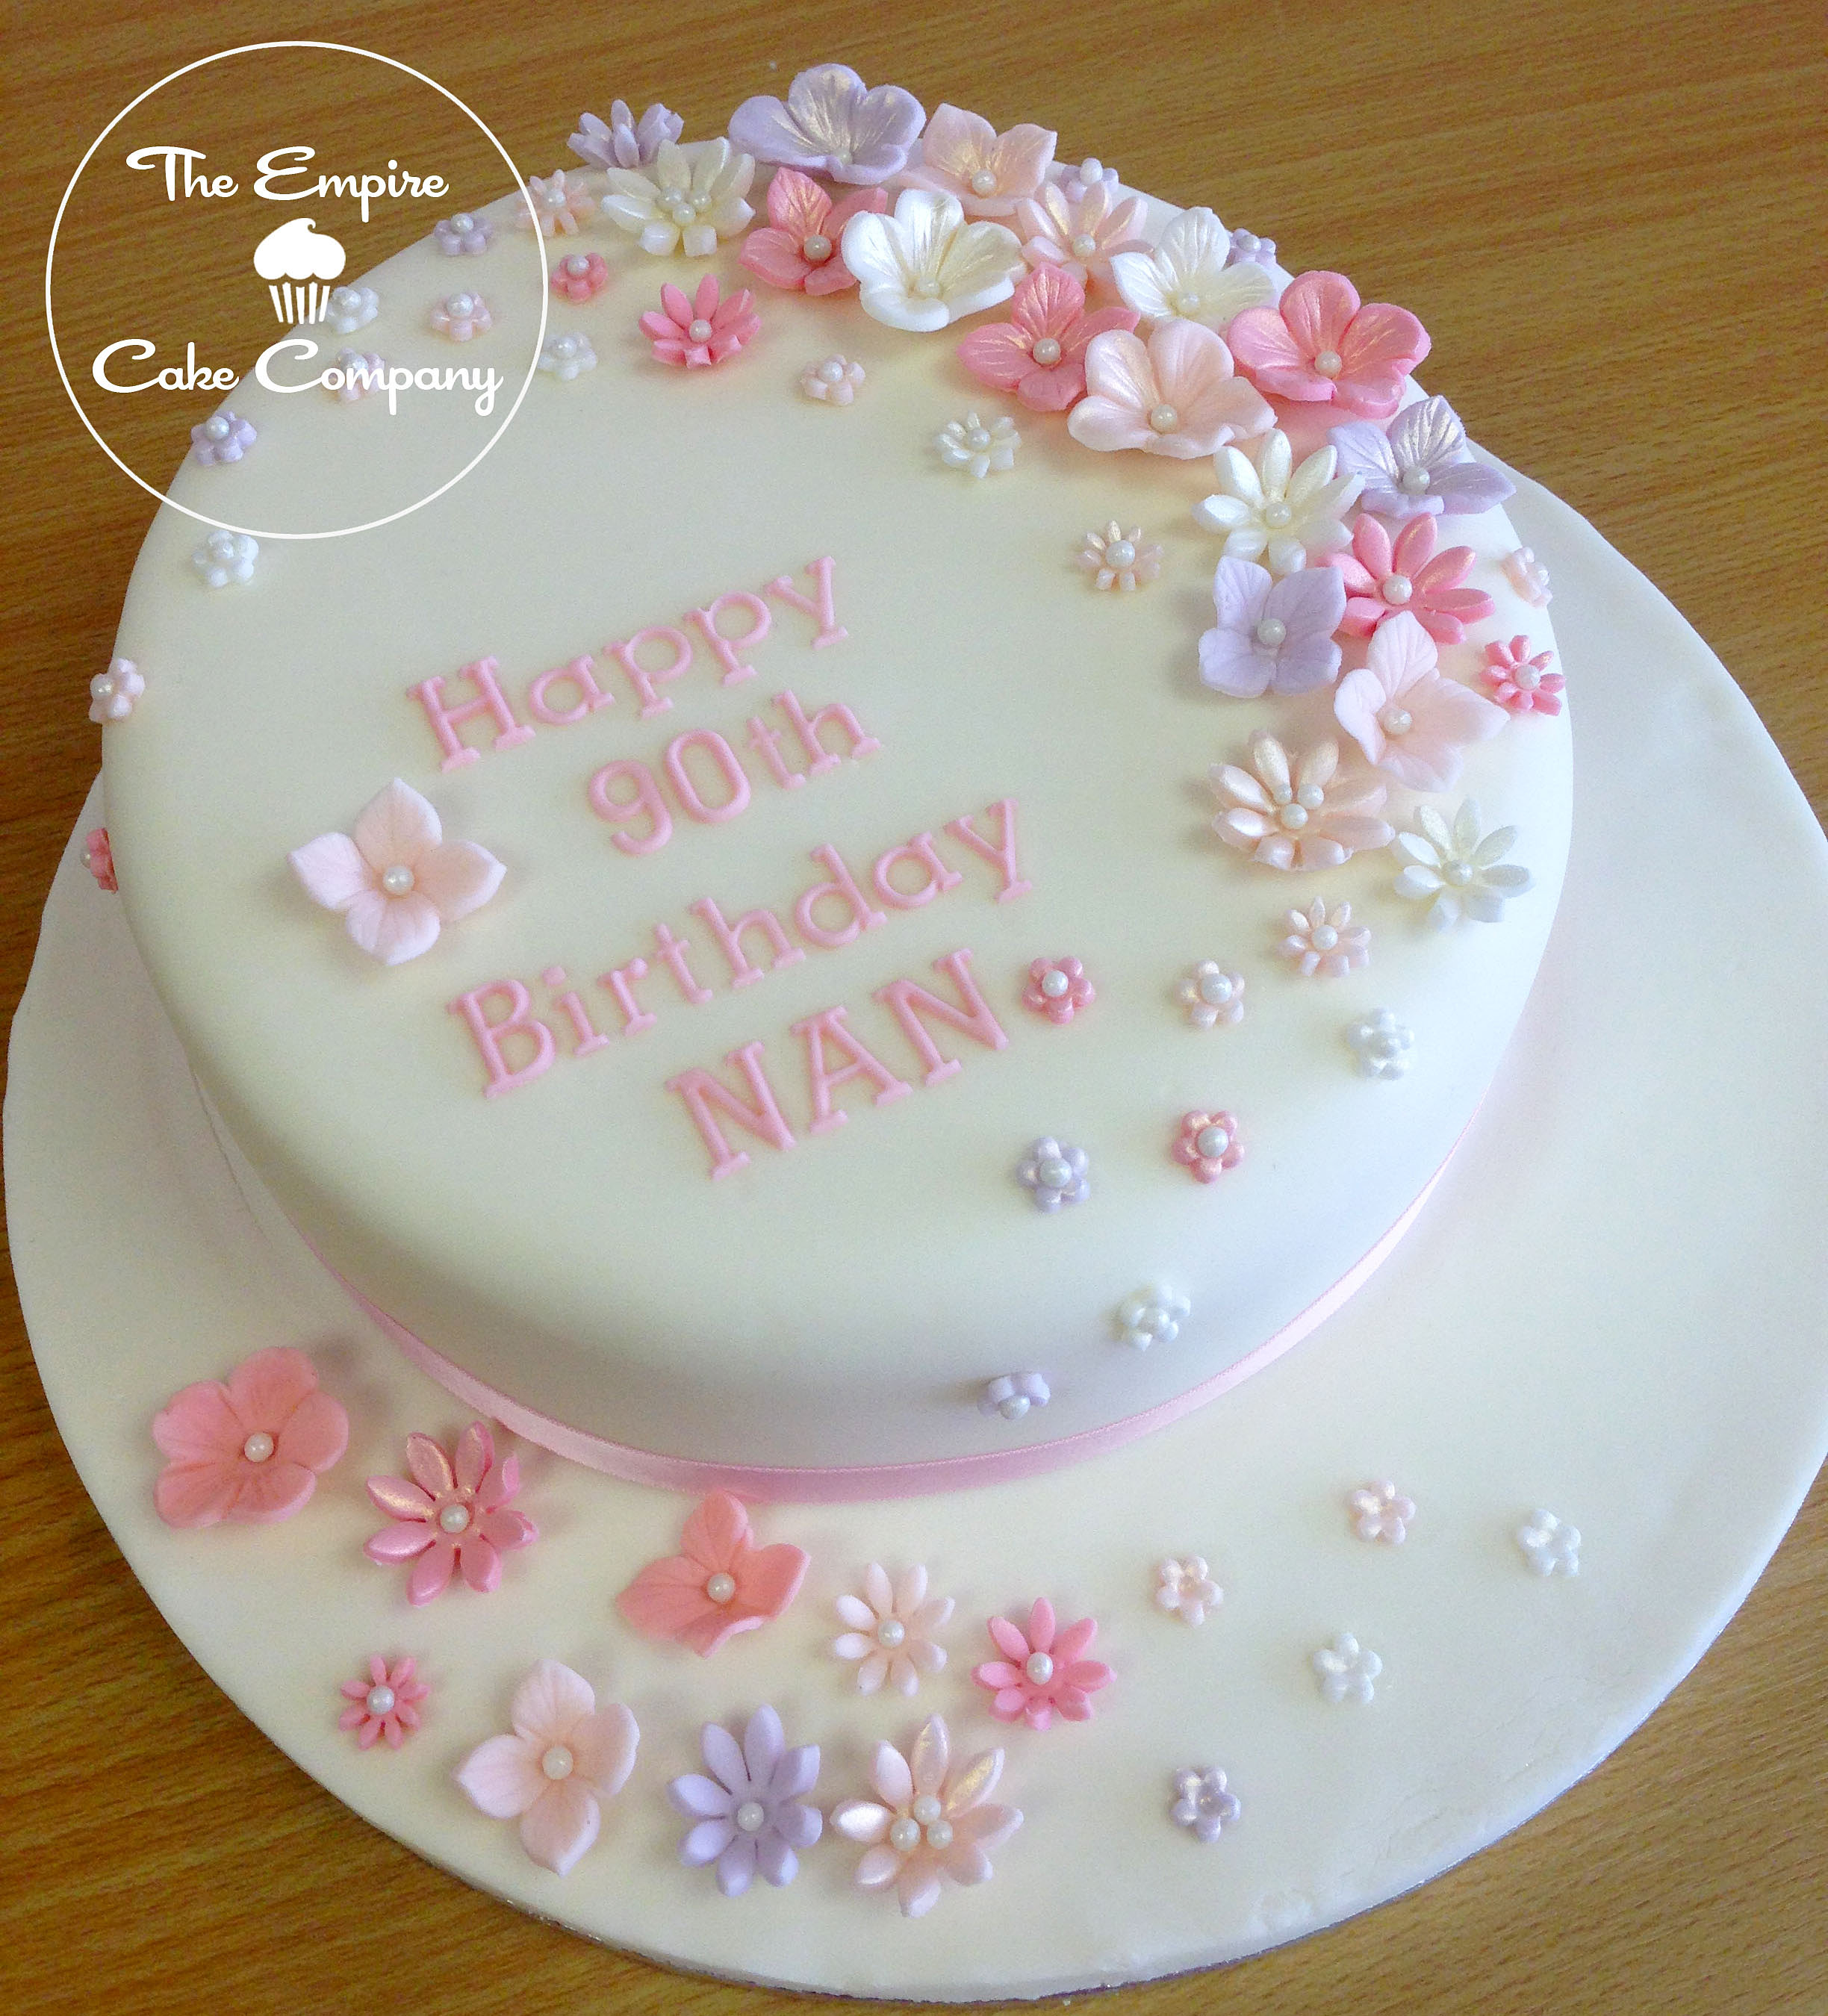 30th birthday flowers and balloons image result for th birthday flowers and balloons izmirmasajfo Images